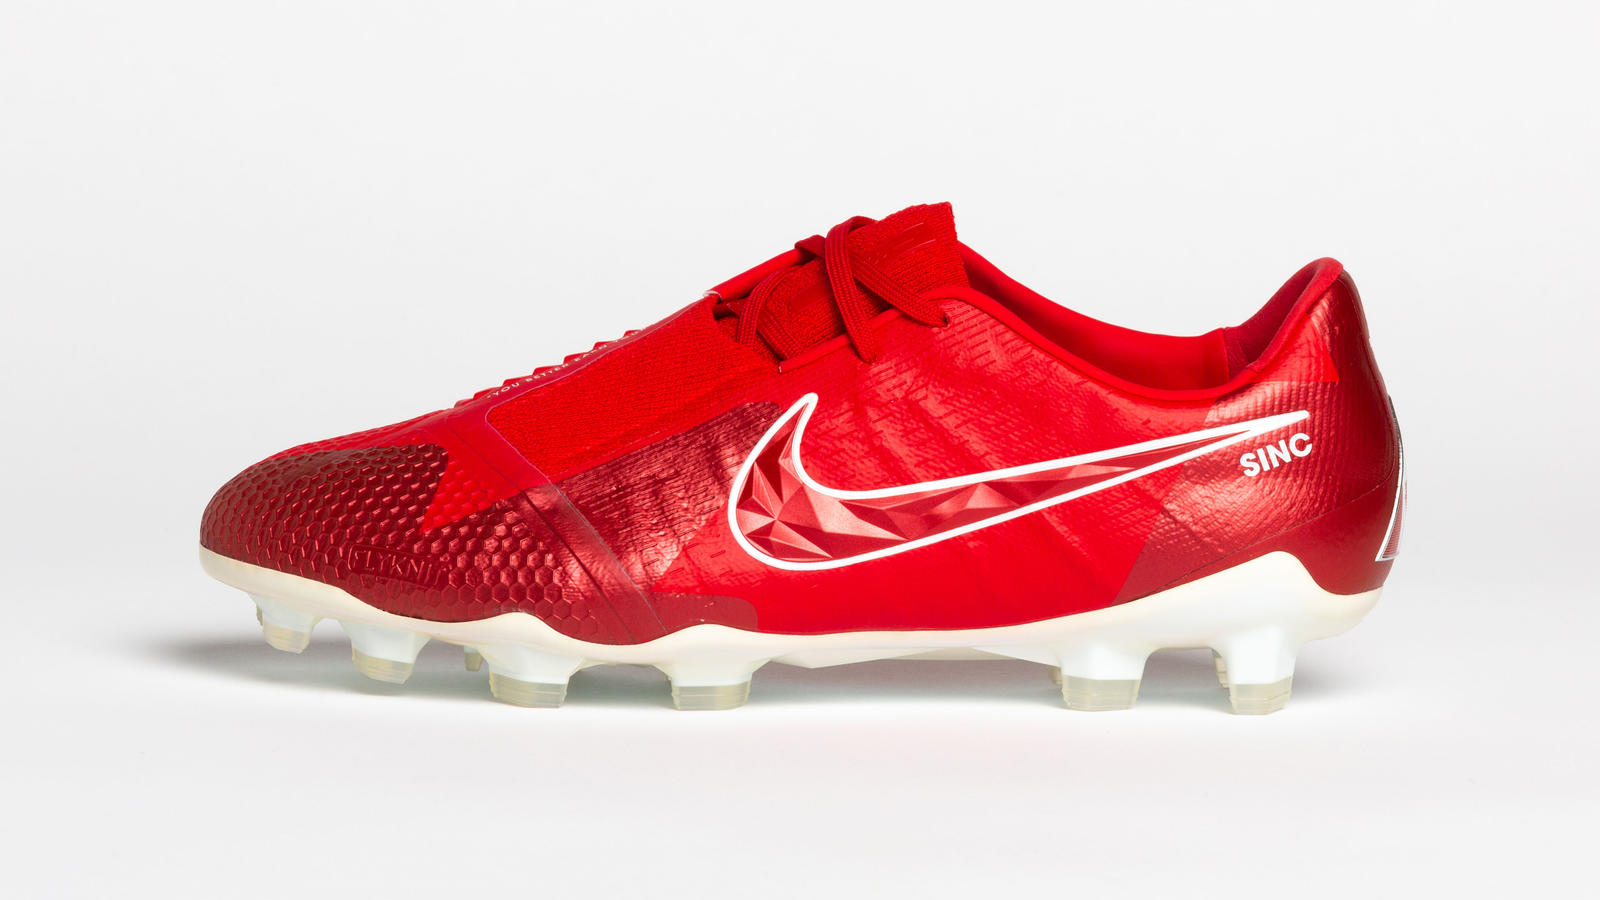 Nike PhantomVNM Christine SInclair 185 international goals 2